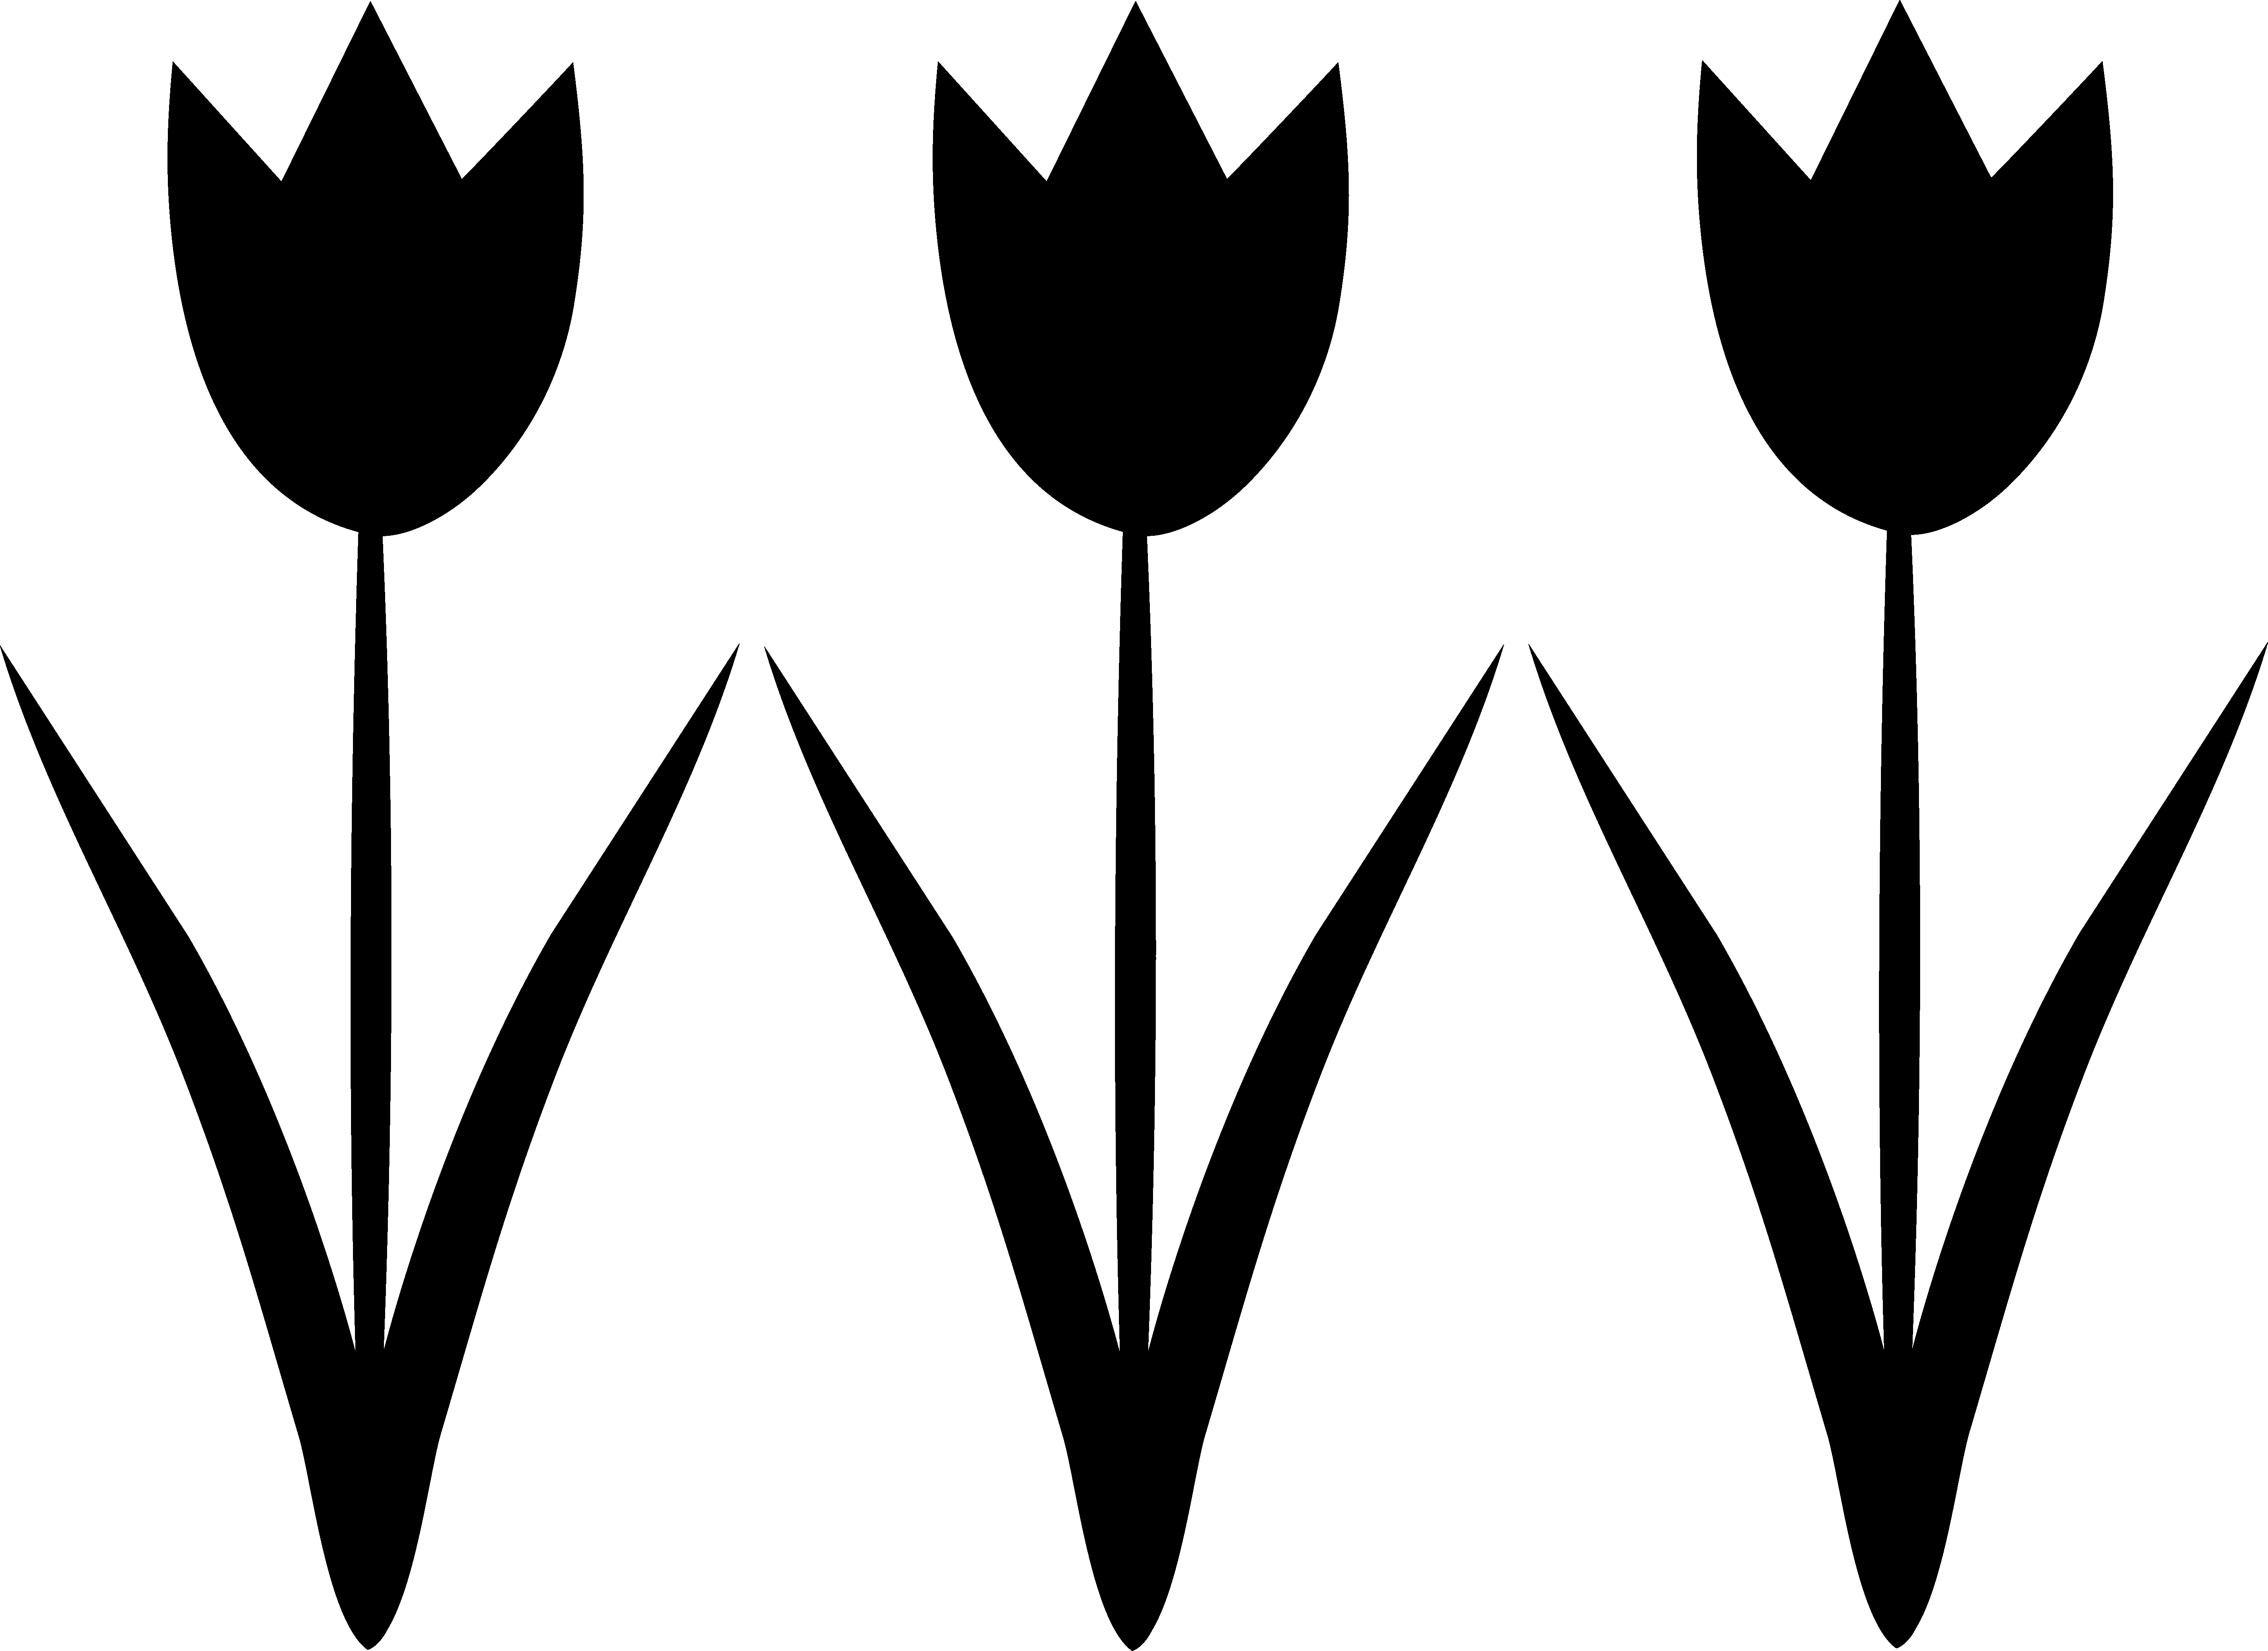 eleletsitz: Tulip Clipart Black And White Images.